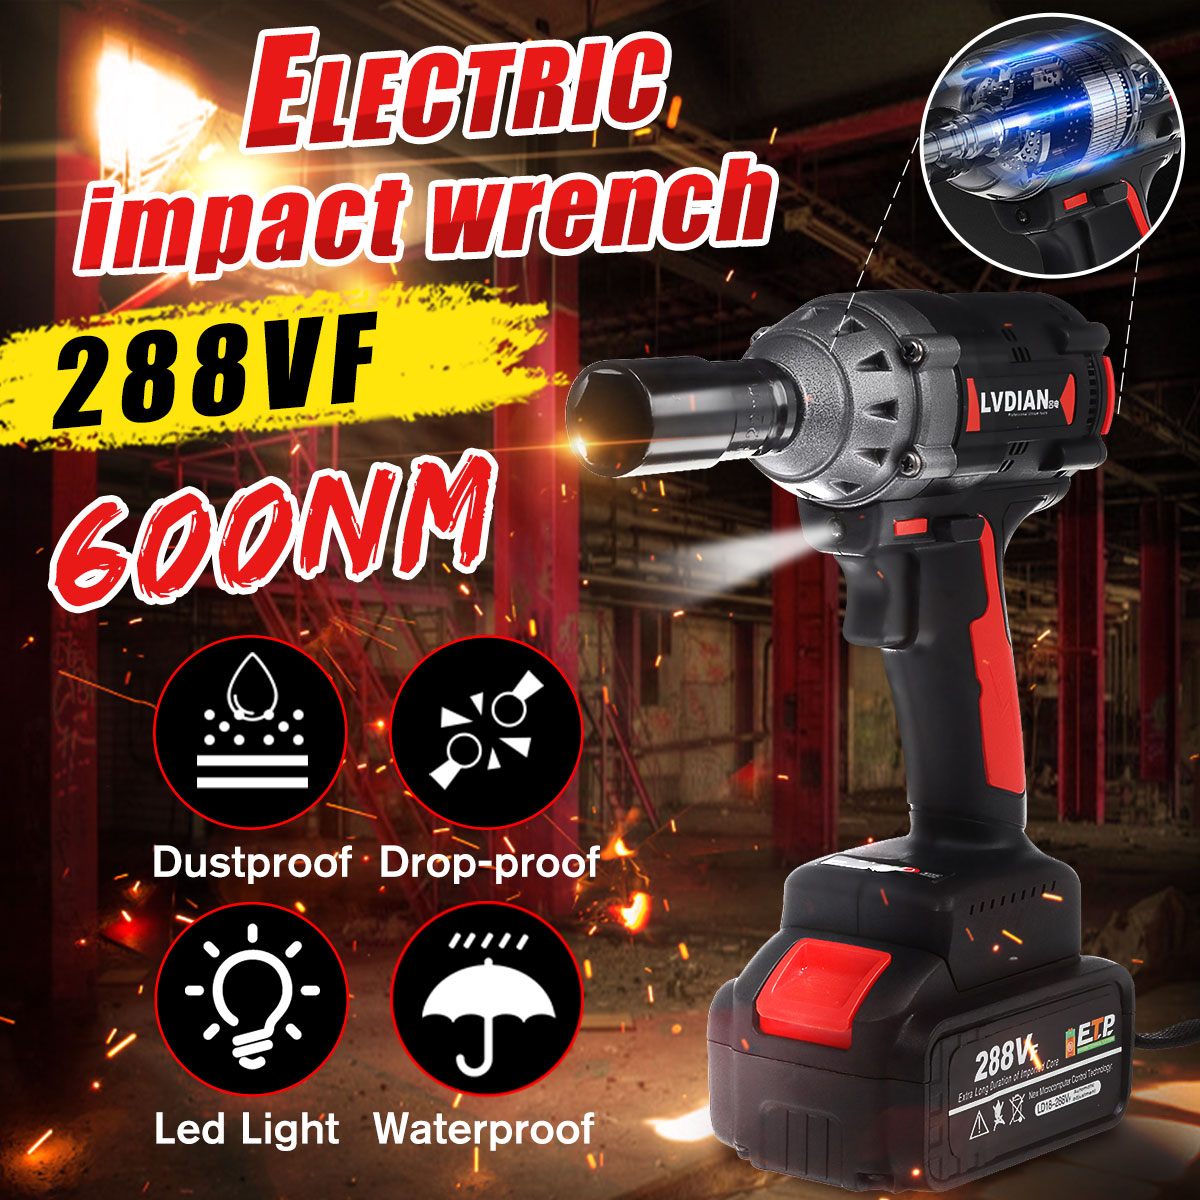 288VF Brushless Cordless Impact Electric Wrench Li Ion Battery 600N.M Torque Household Car/SUV Wheel Socket Wrench  Tools